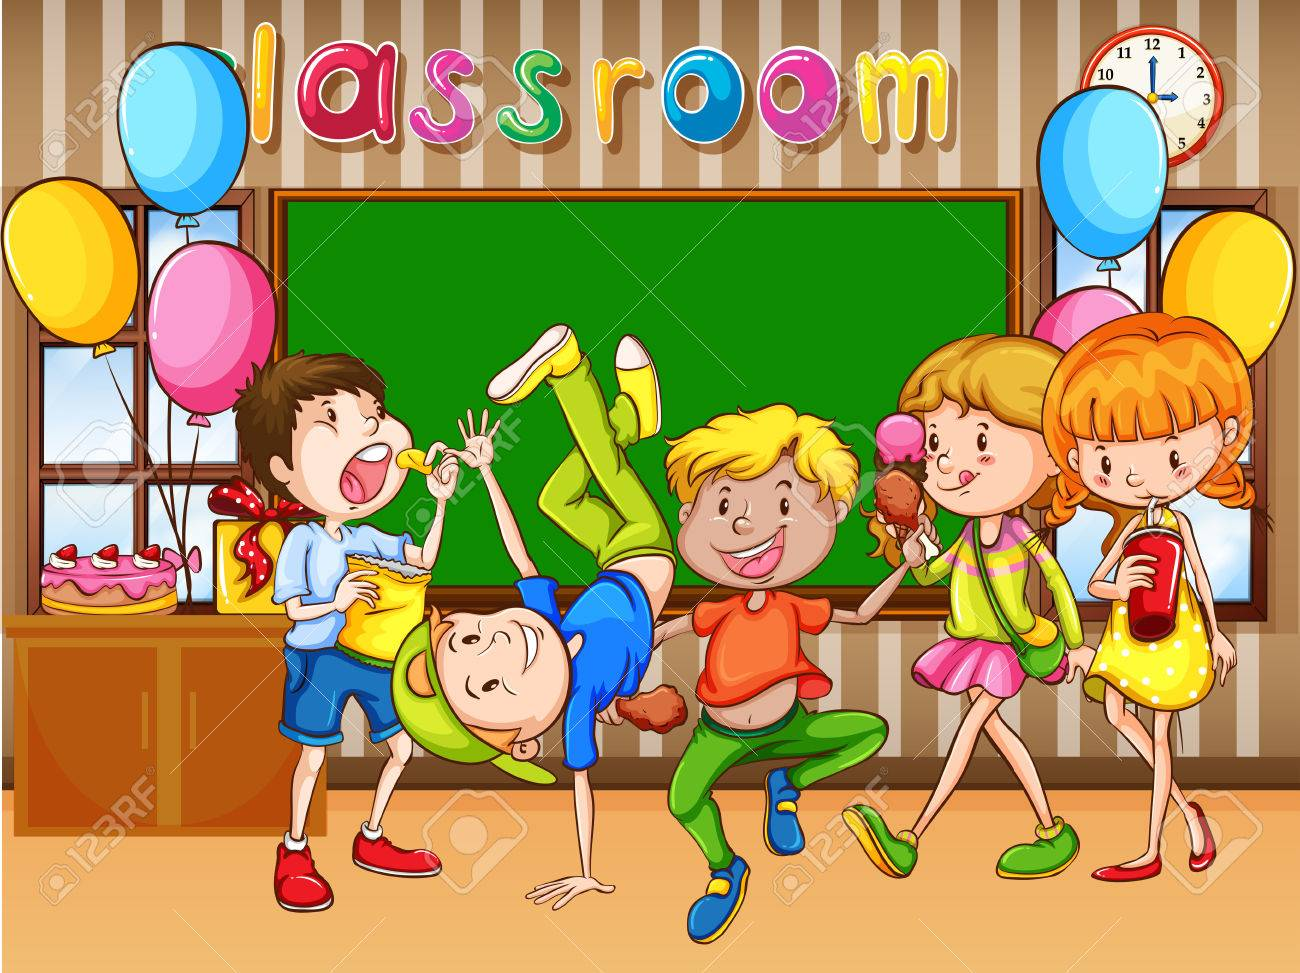 Classroom scene with kids having party illustration.